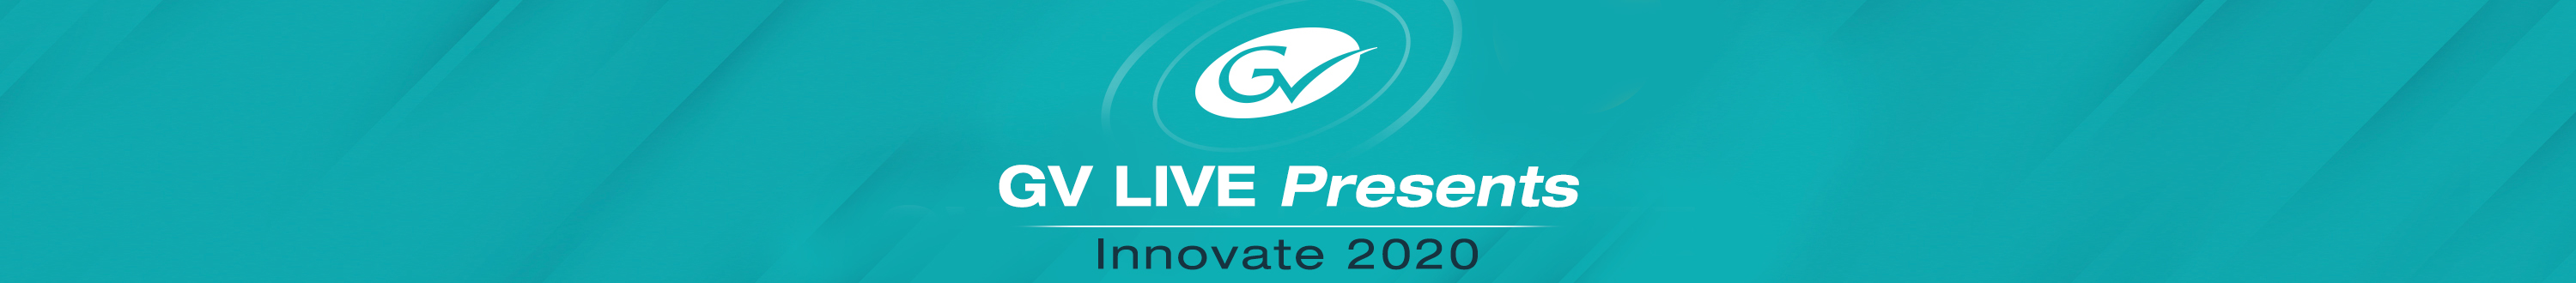 Header_GVLIVEPResents_Innovate